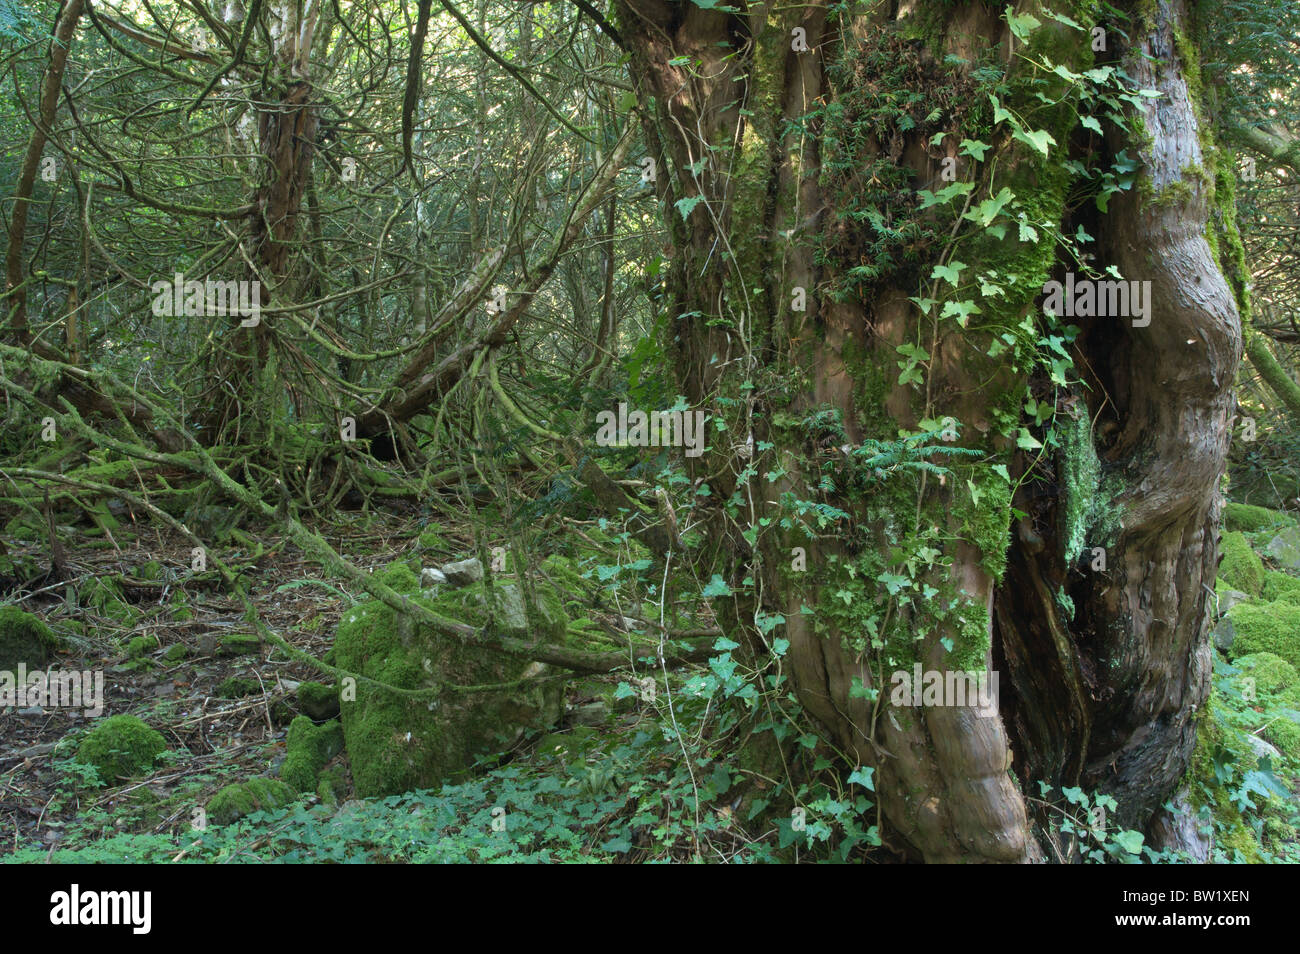 Yew forest (Taxus baccata) - Stock Image